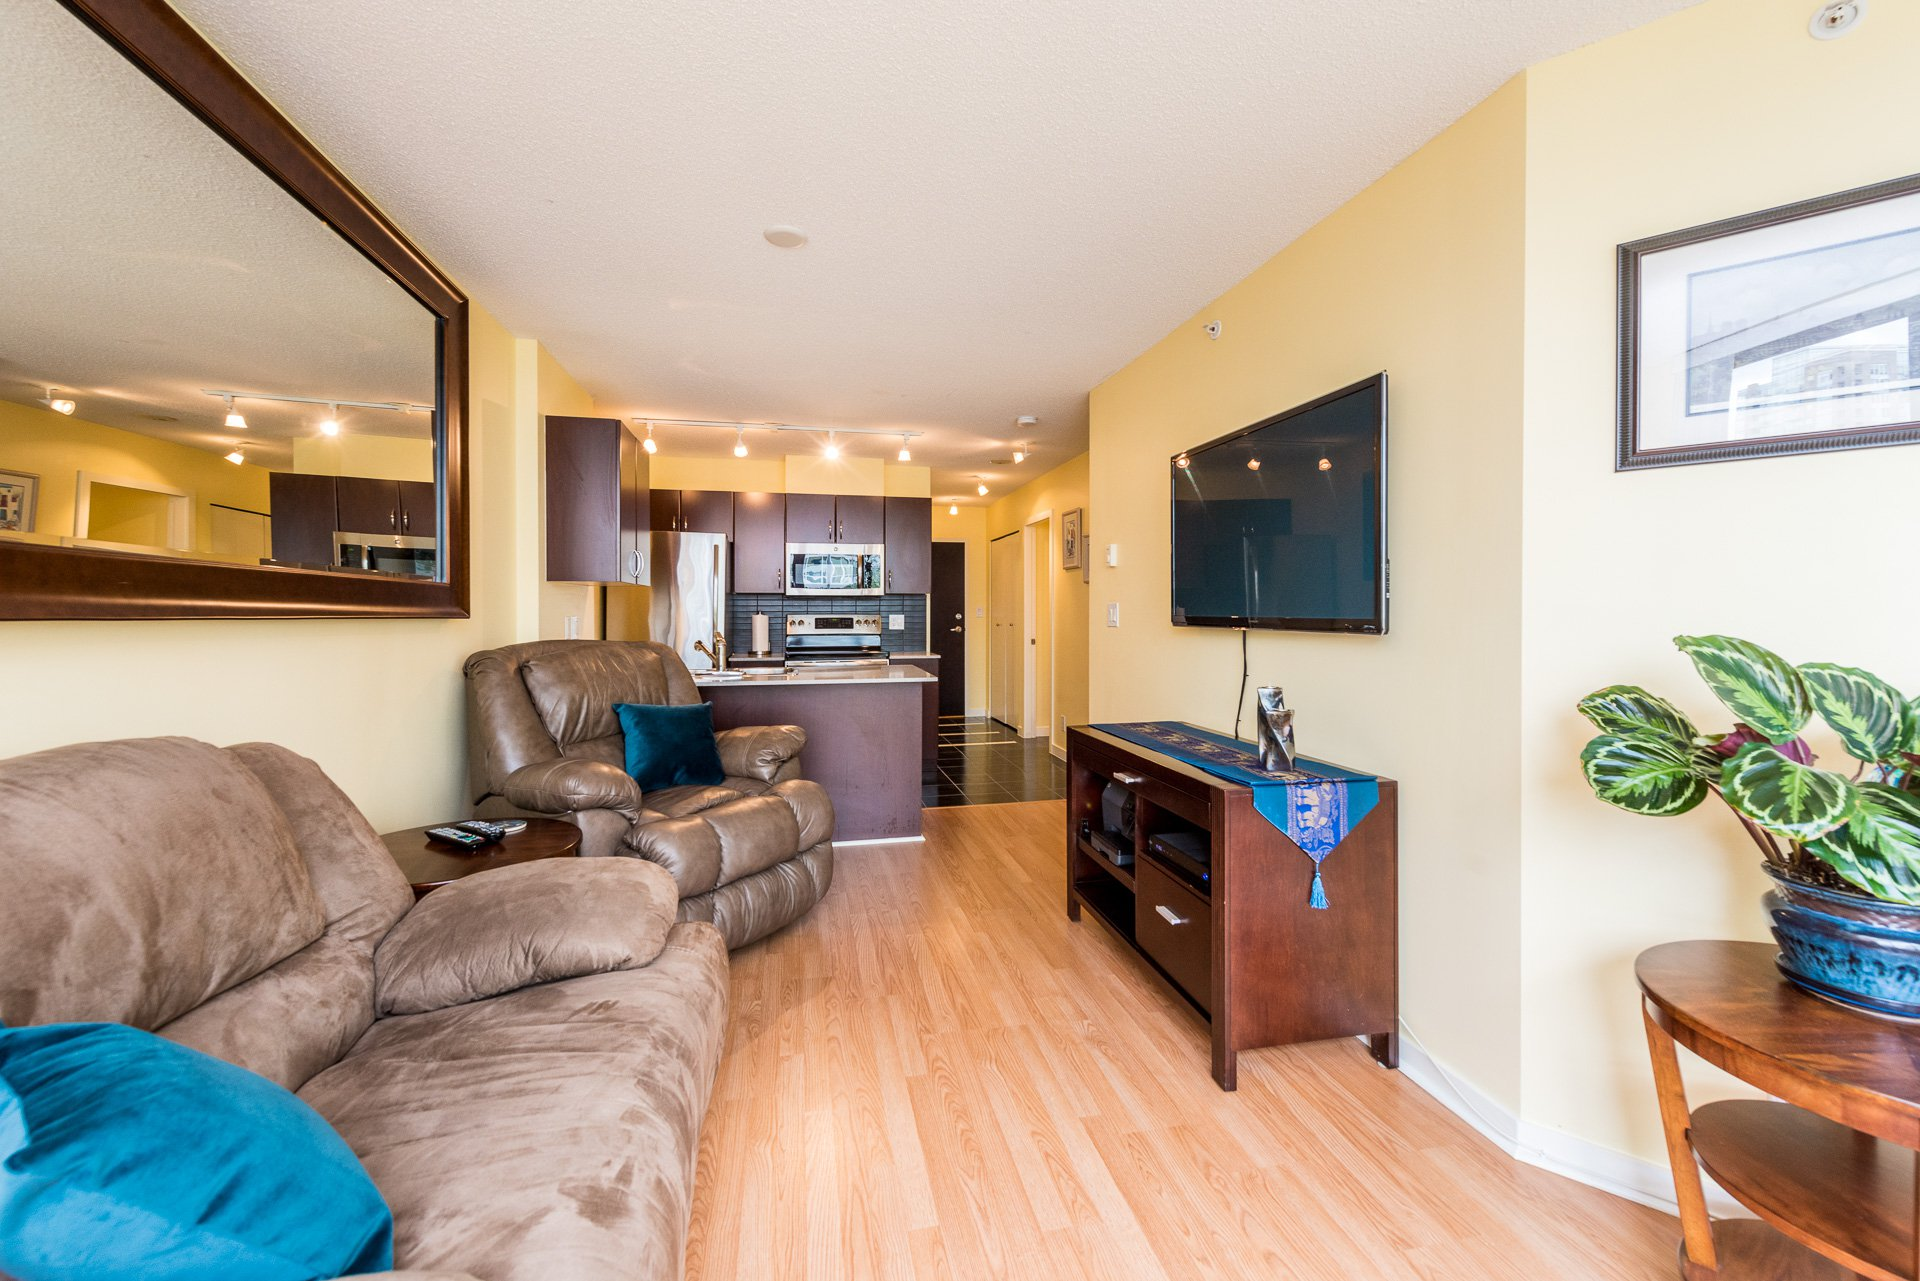 """Main Photo: 1315 938 SMITHE Street in Vancouver: Downtown VW Condo for sale in """"ELECTRIC AVENUE"""" (Vancouver West)  : MLS®# R2388880"""